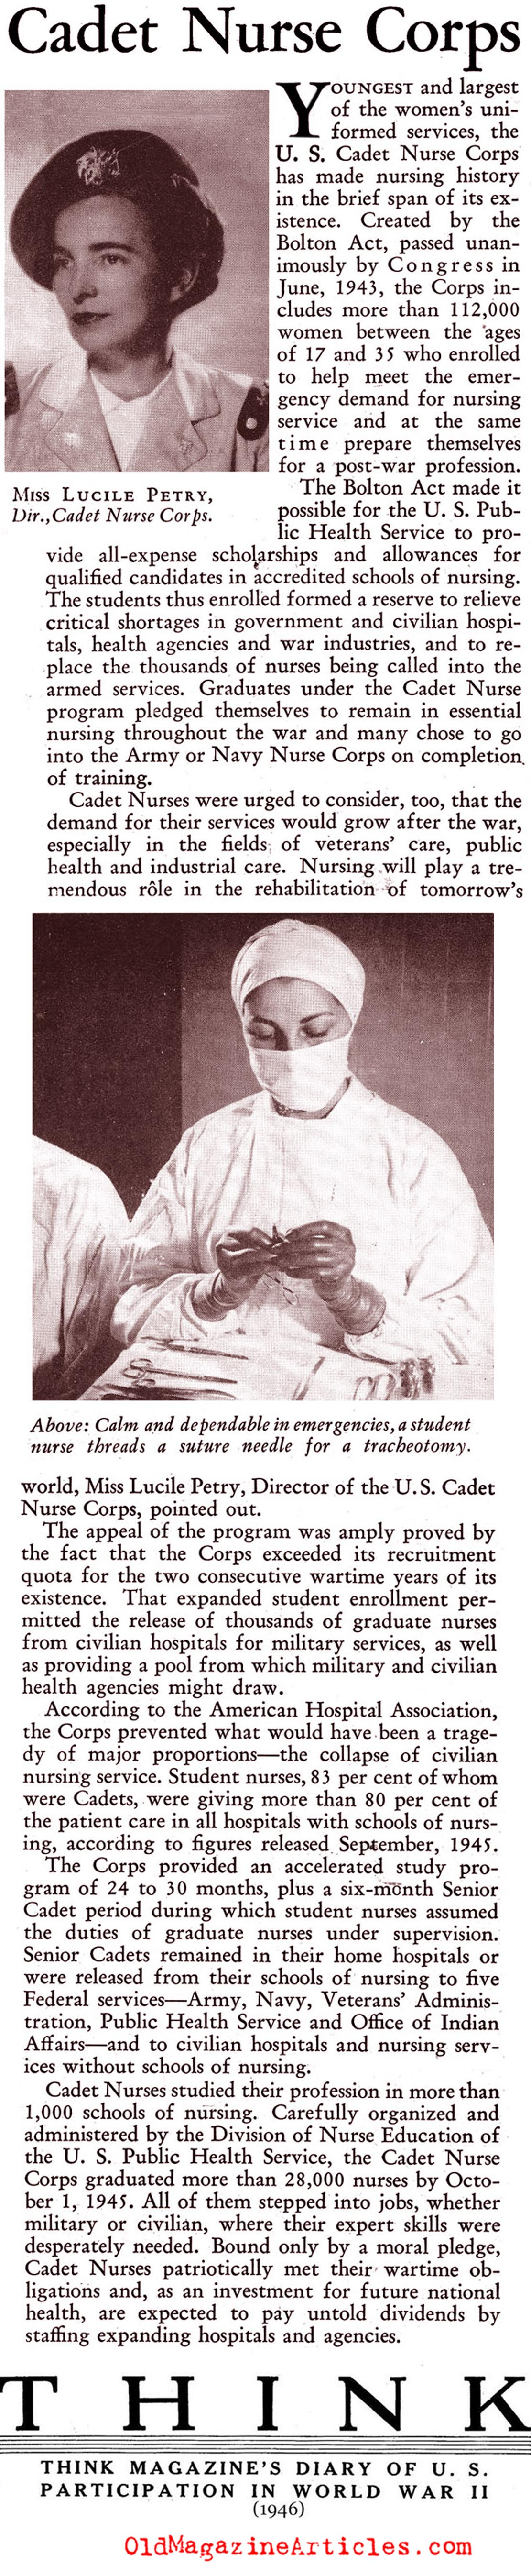 The Cadet Nurse Corps (Think Magazine, 1946)